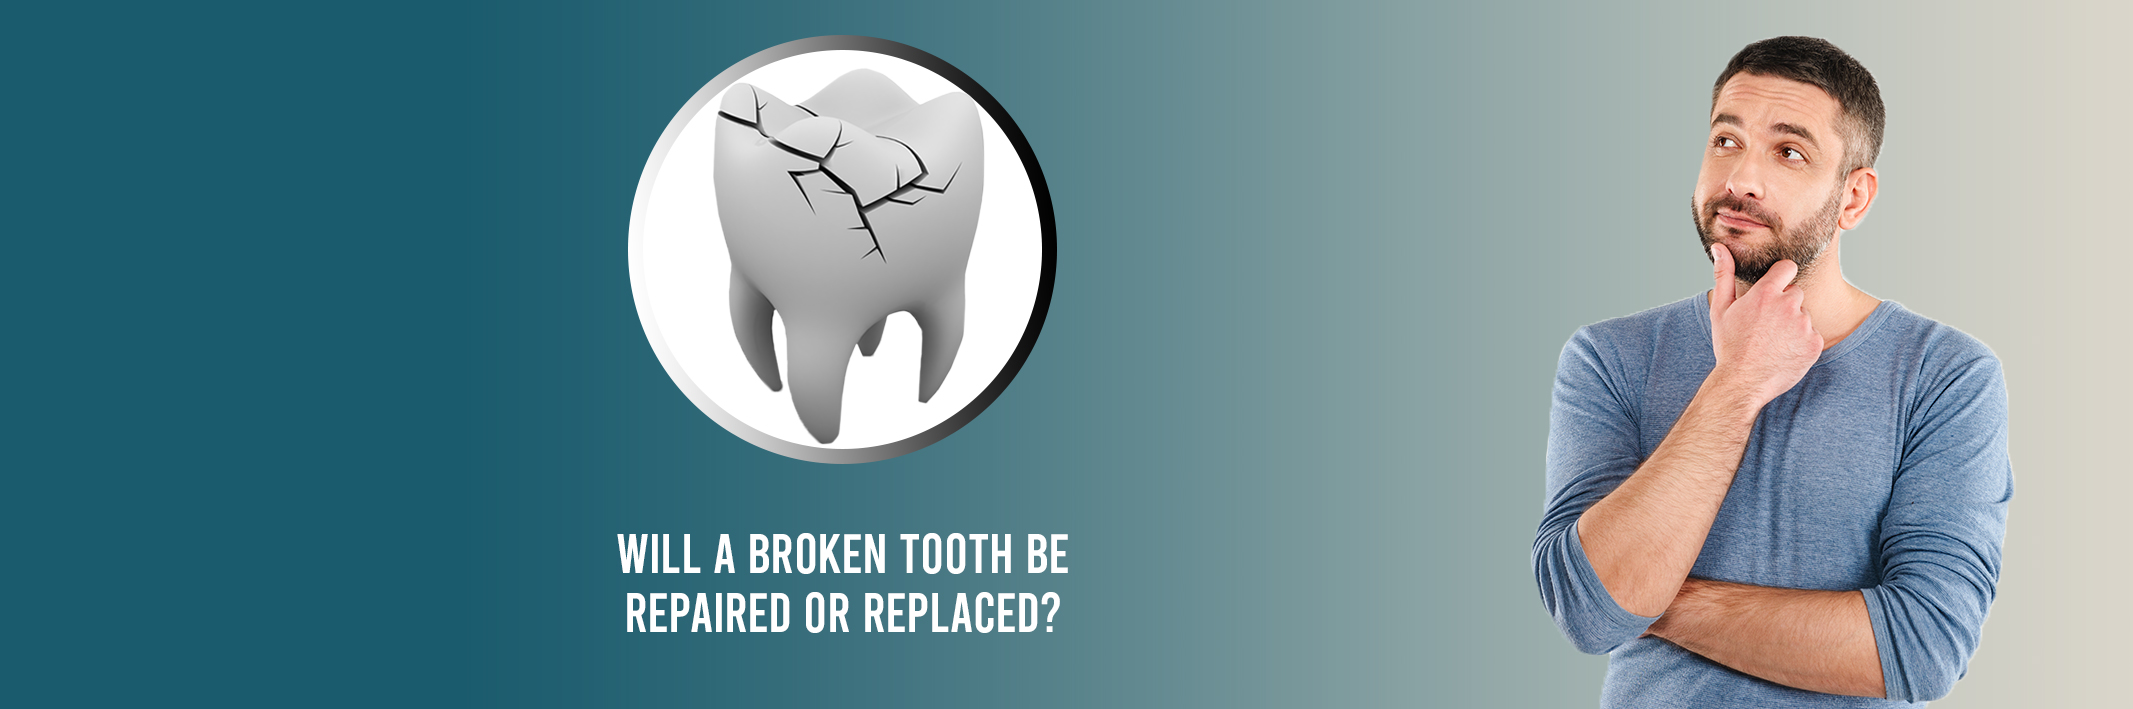 Will a Broken Tooth Be Repaired or Replaced?